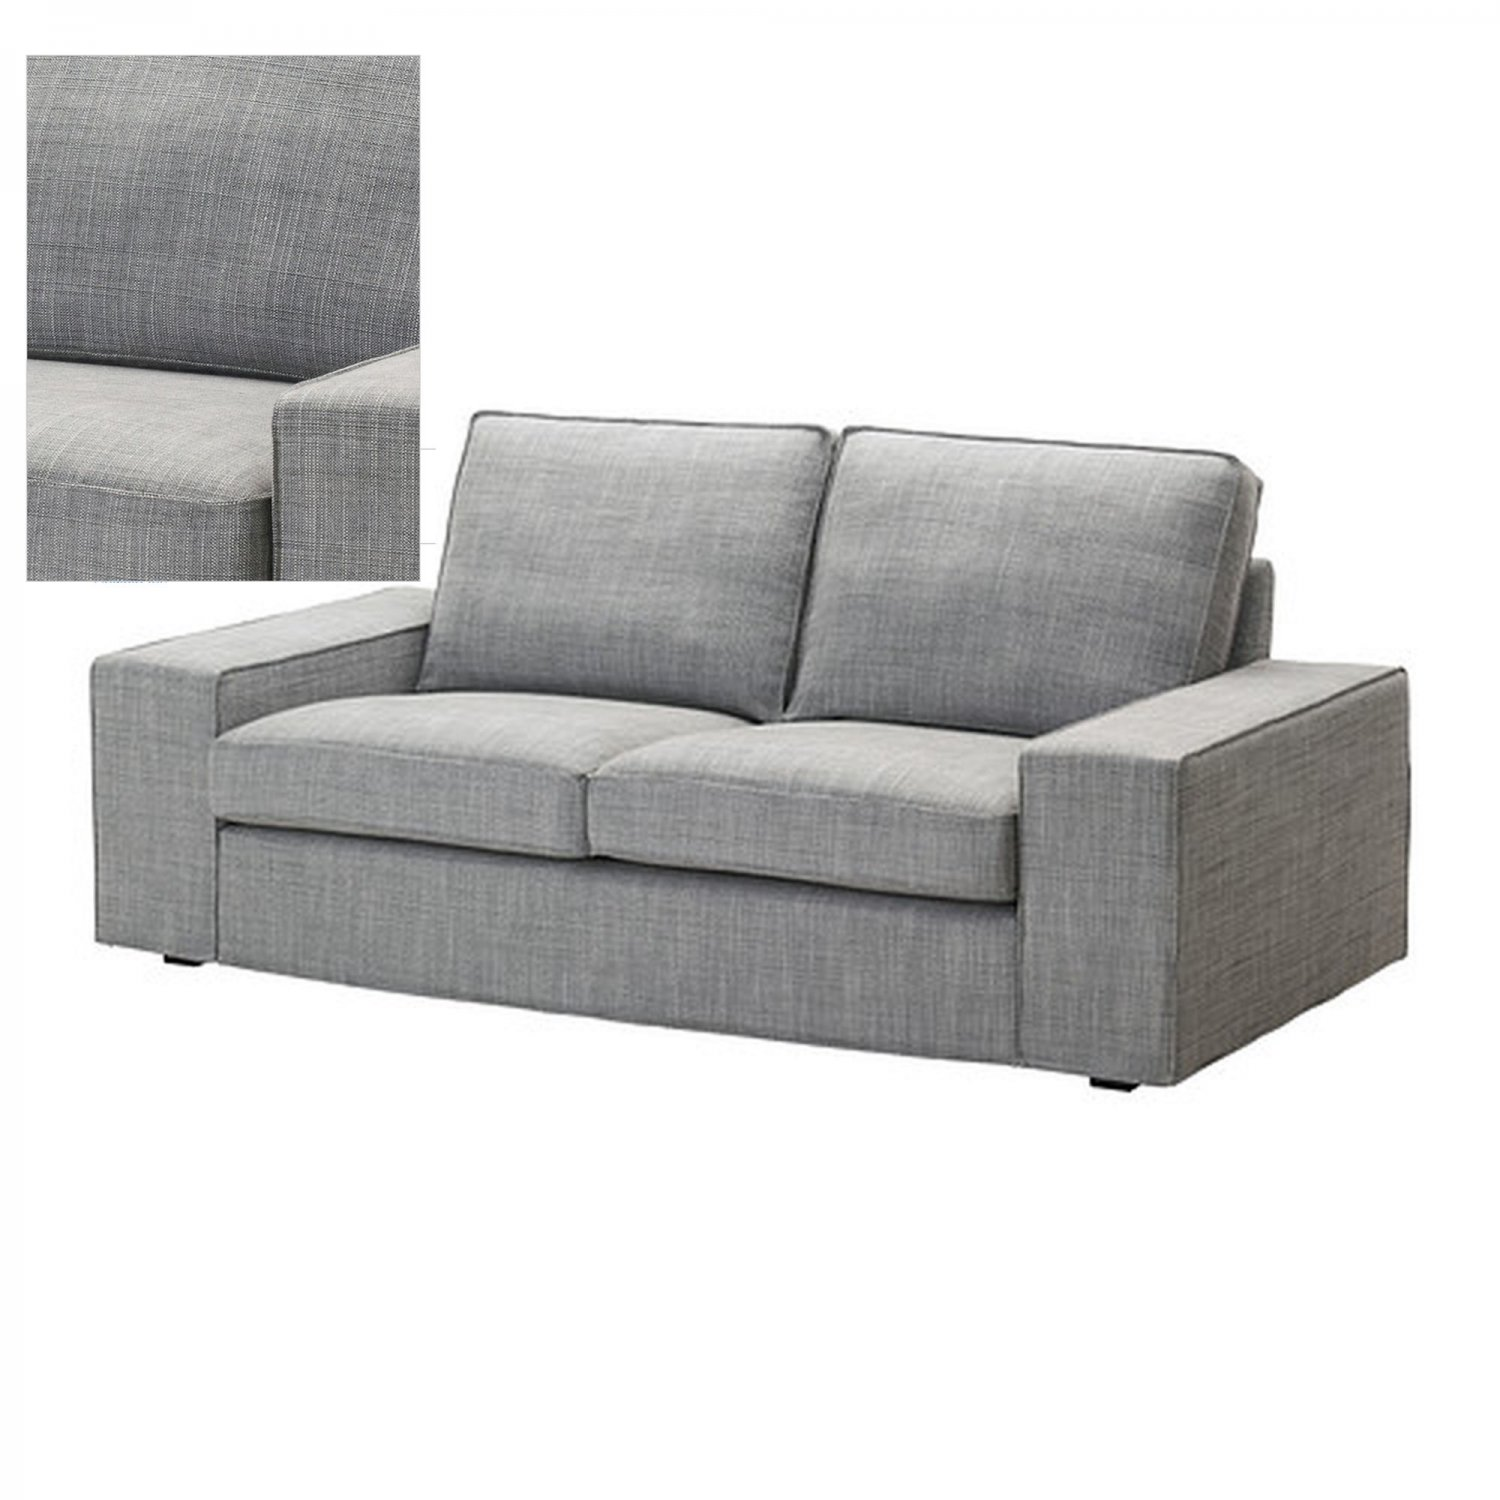 Ikea Kivik 2 Seat Loveseat Sofa Slipcover Cover Isunda Gray Grey Bezug Housse